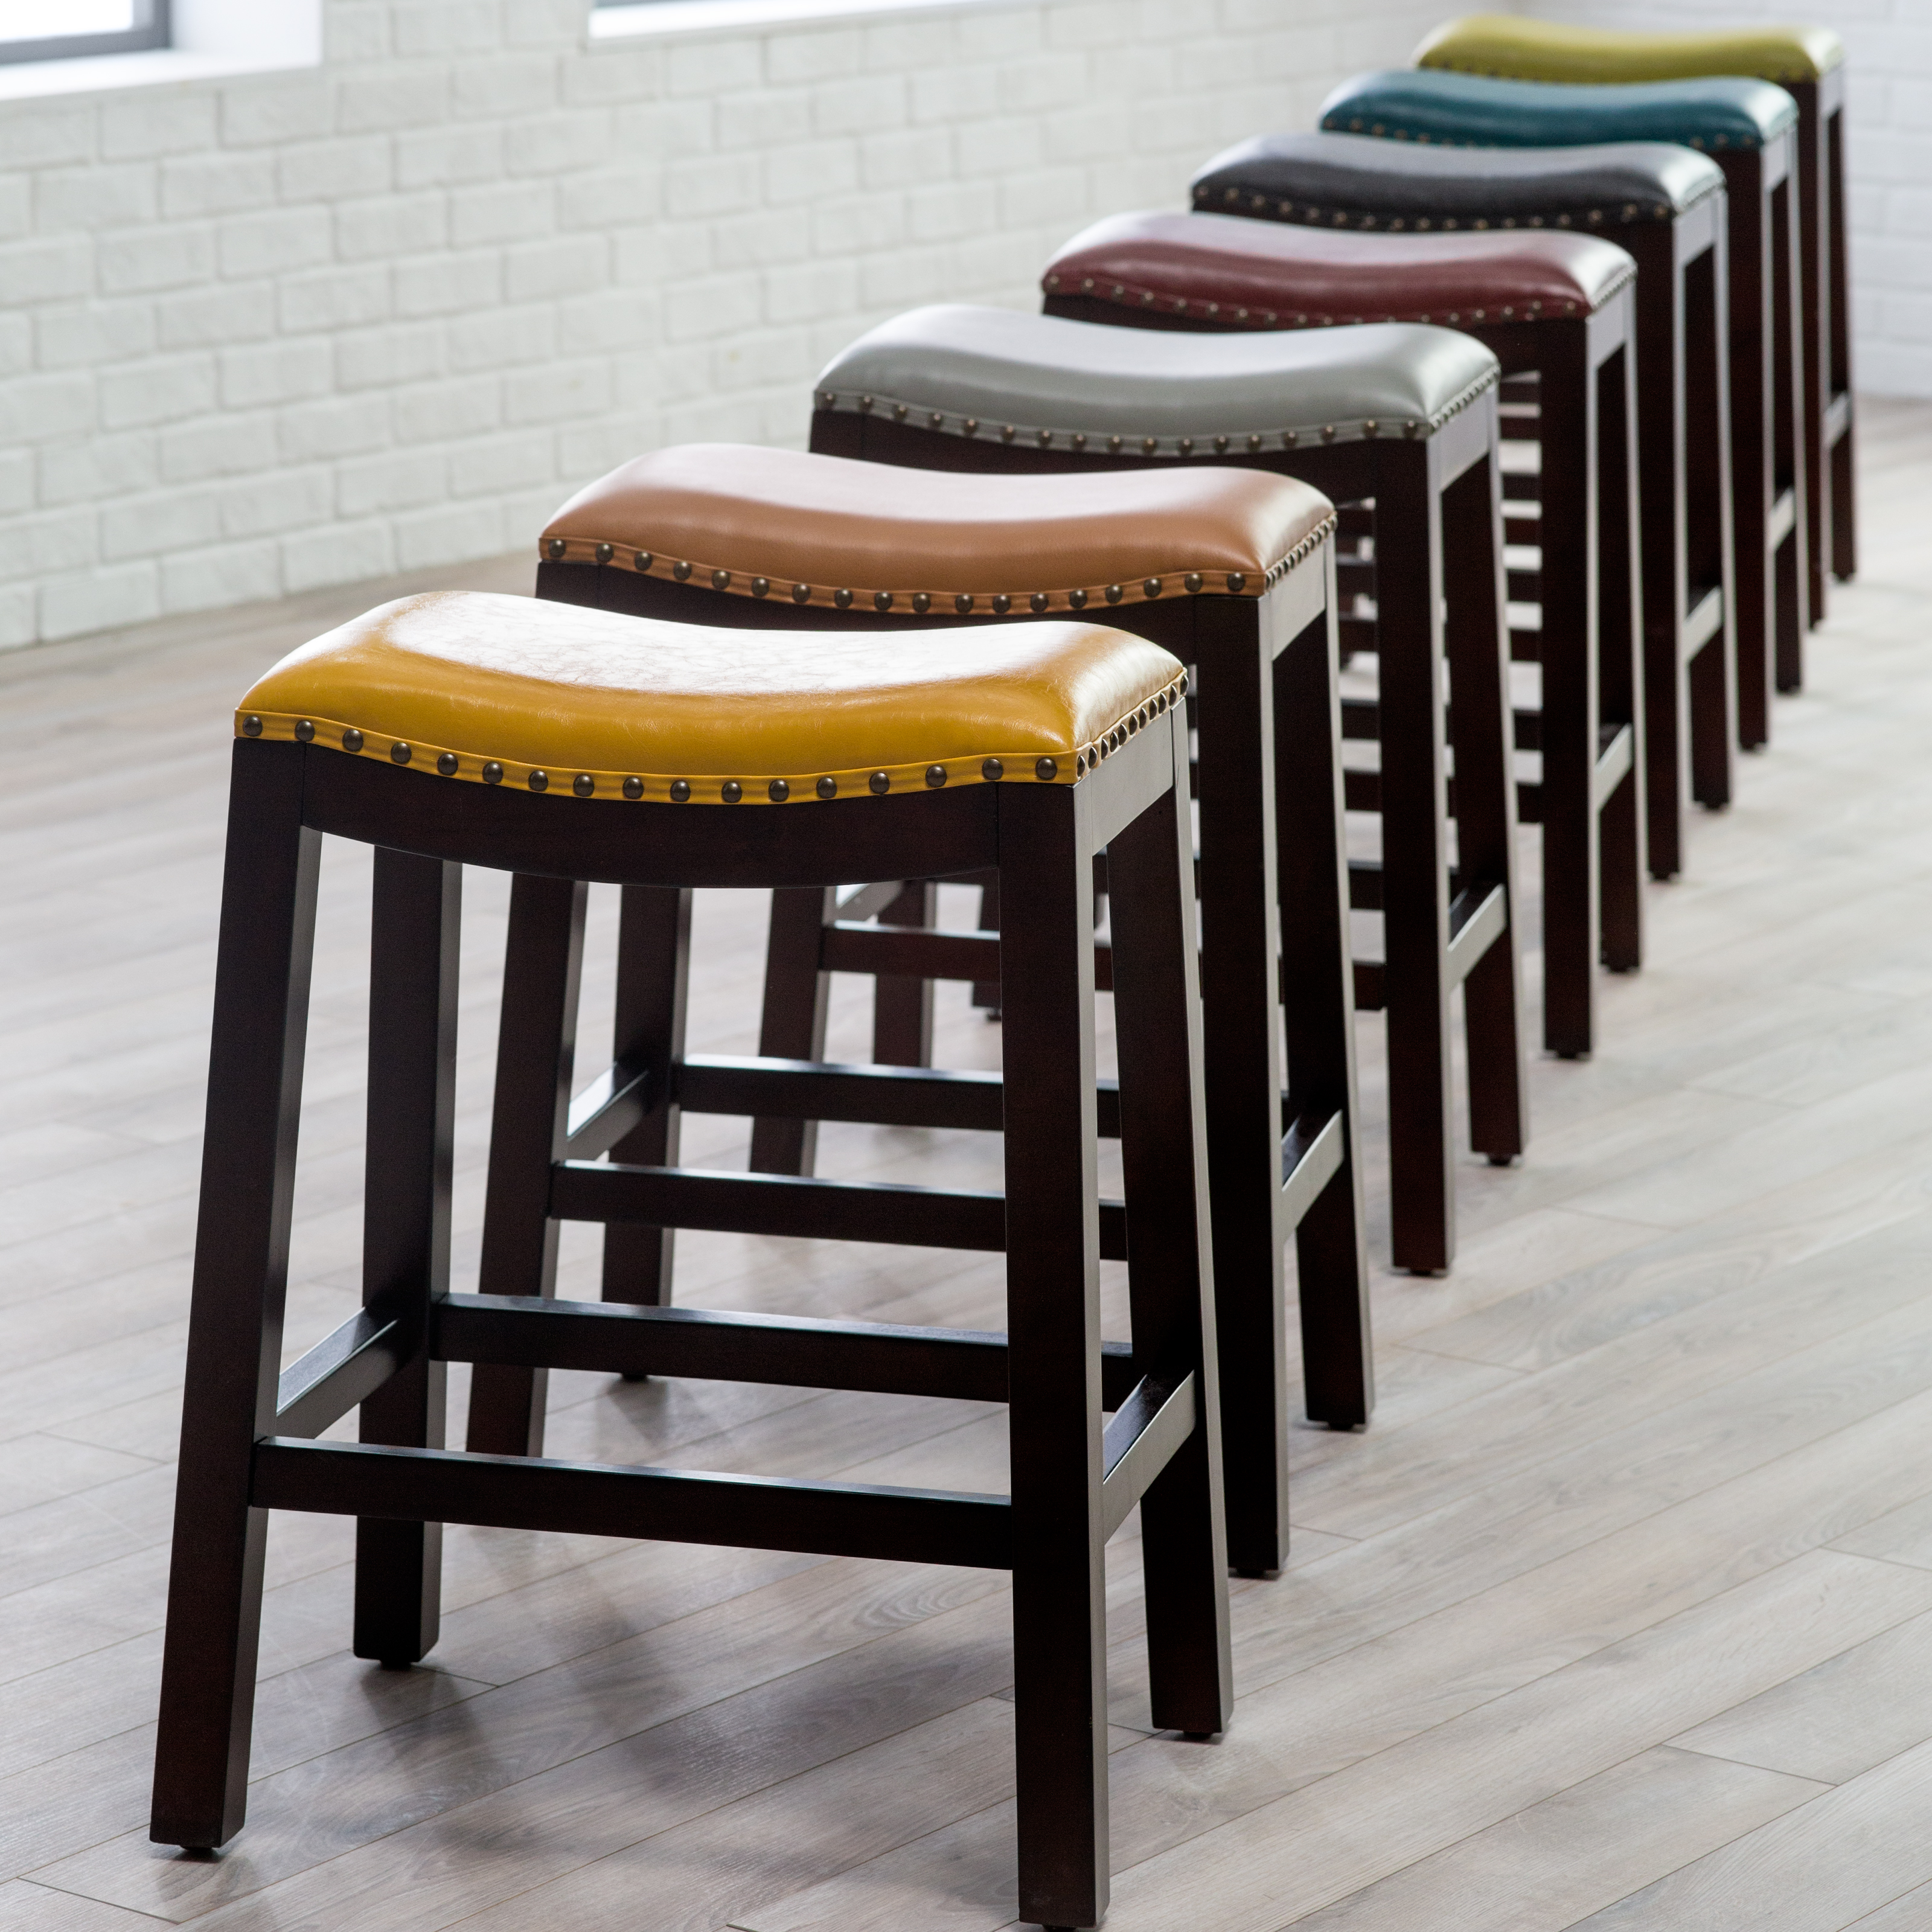 & Belham Living Hutton Backless Counter Stool | Hayneedle islam-shia.org